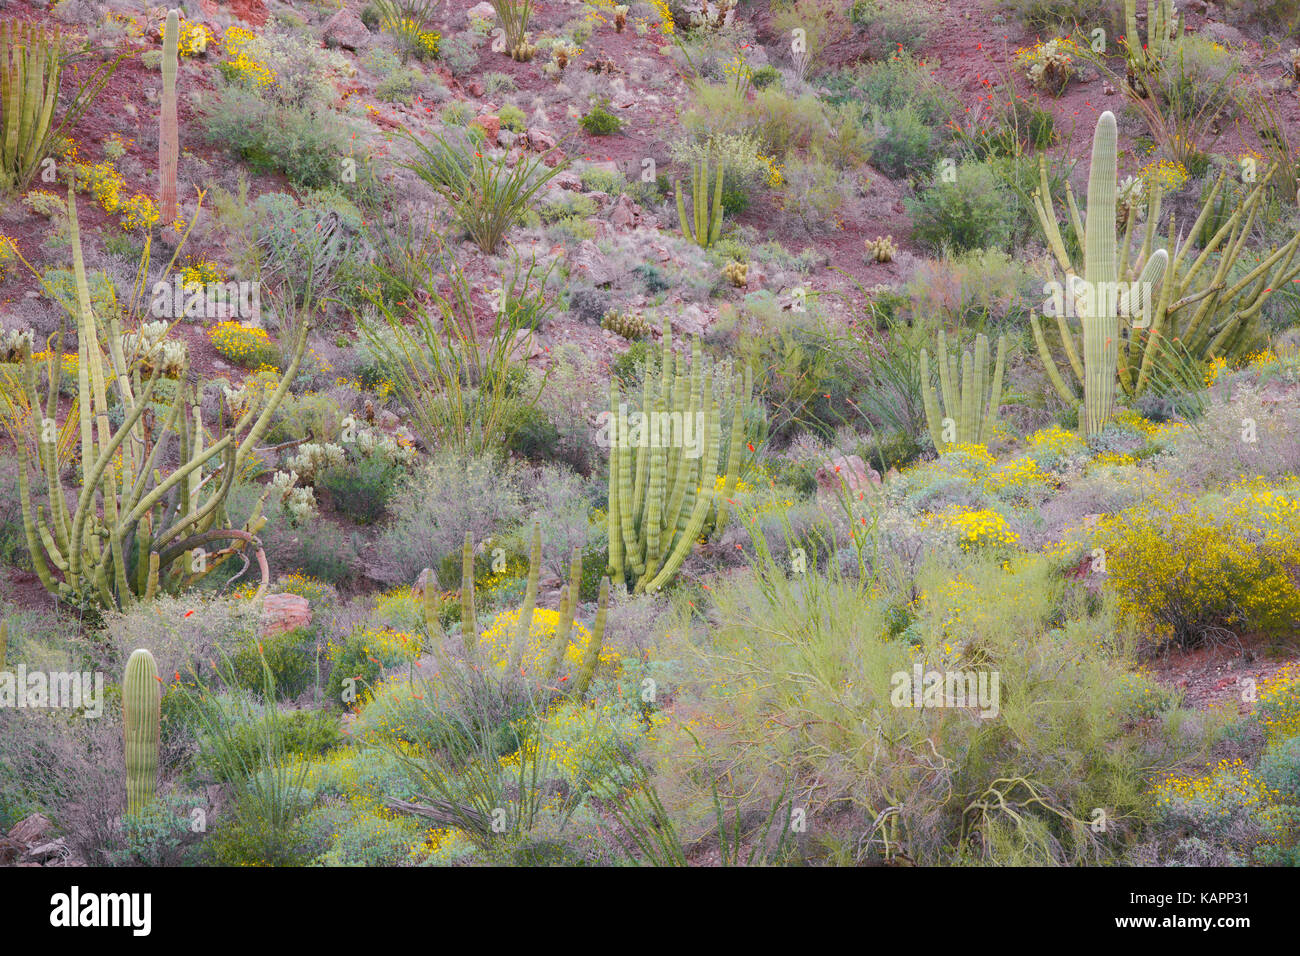 Spring bloom in Arizona's Organ Pipe Cactus National Monument. - Stock Image